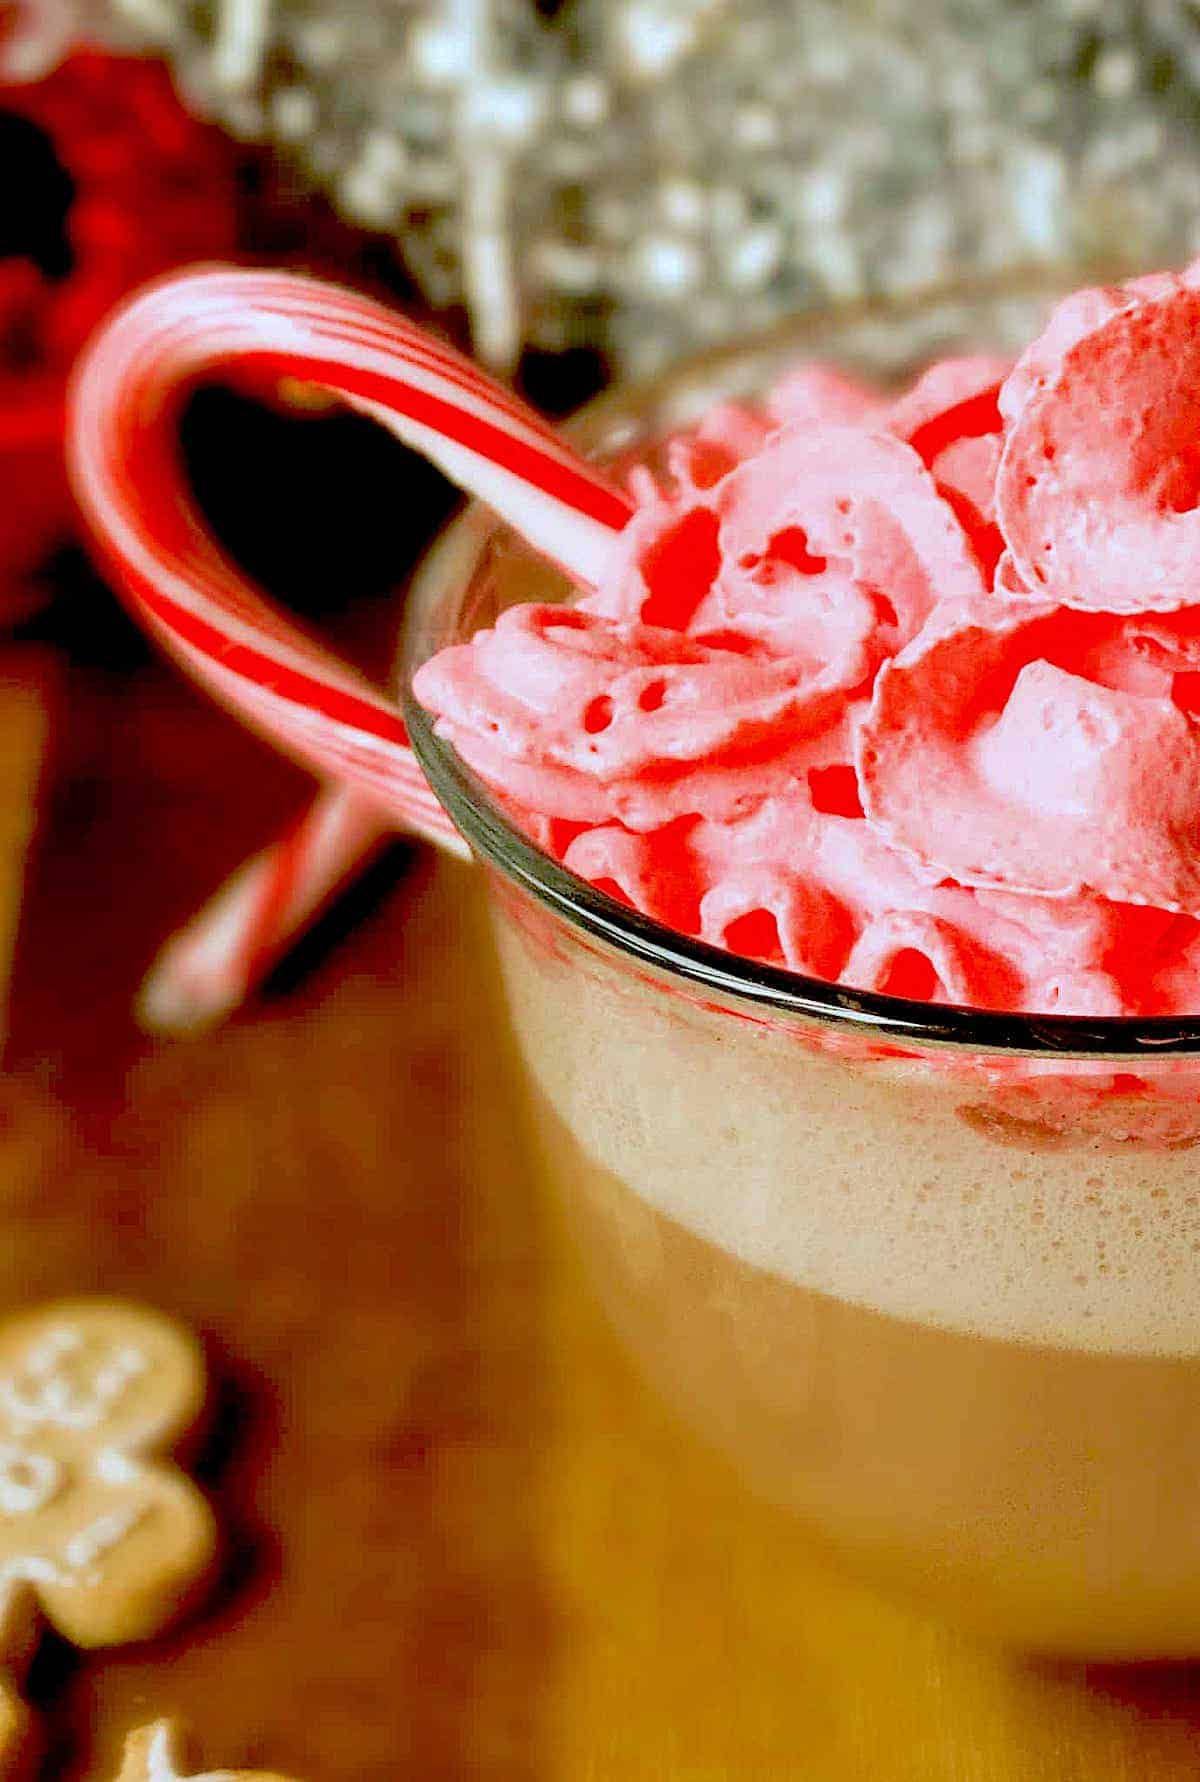 homemade peppermint mocha latte with peppermint whipped cream and candy cane in a clear glass mug